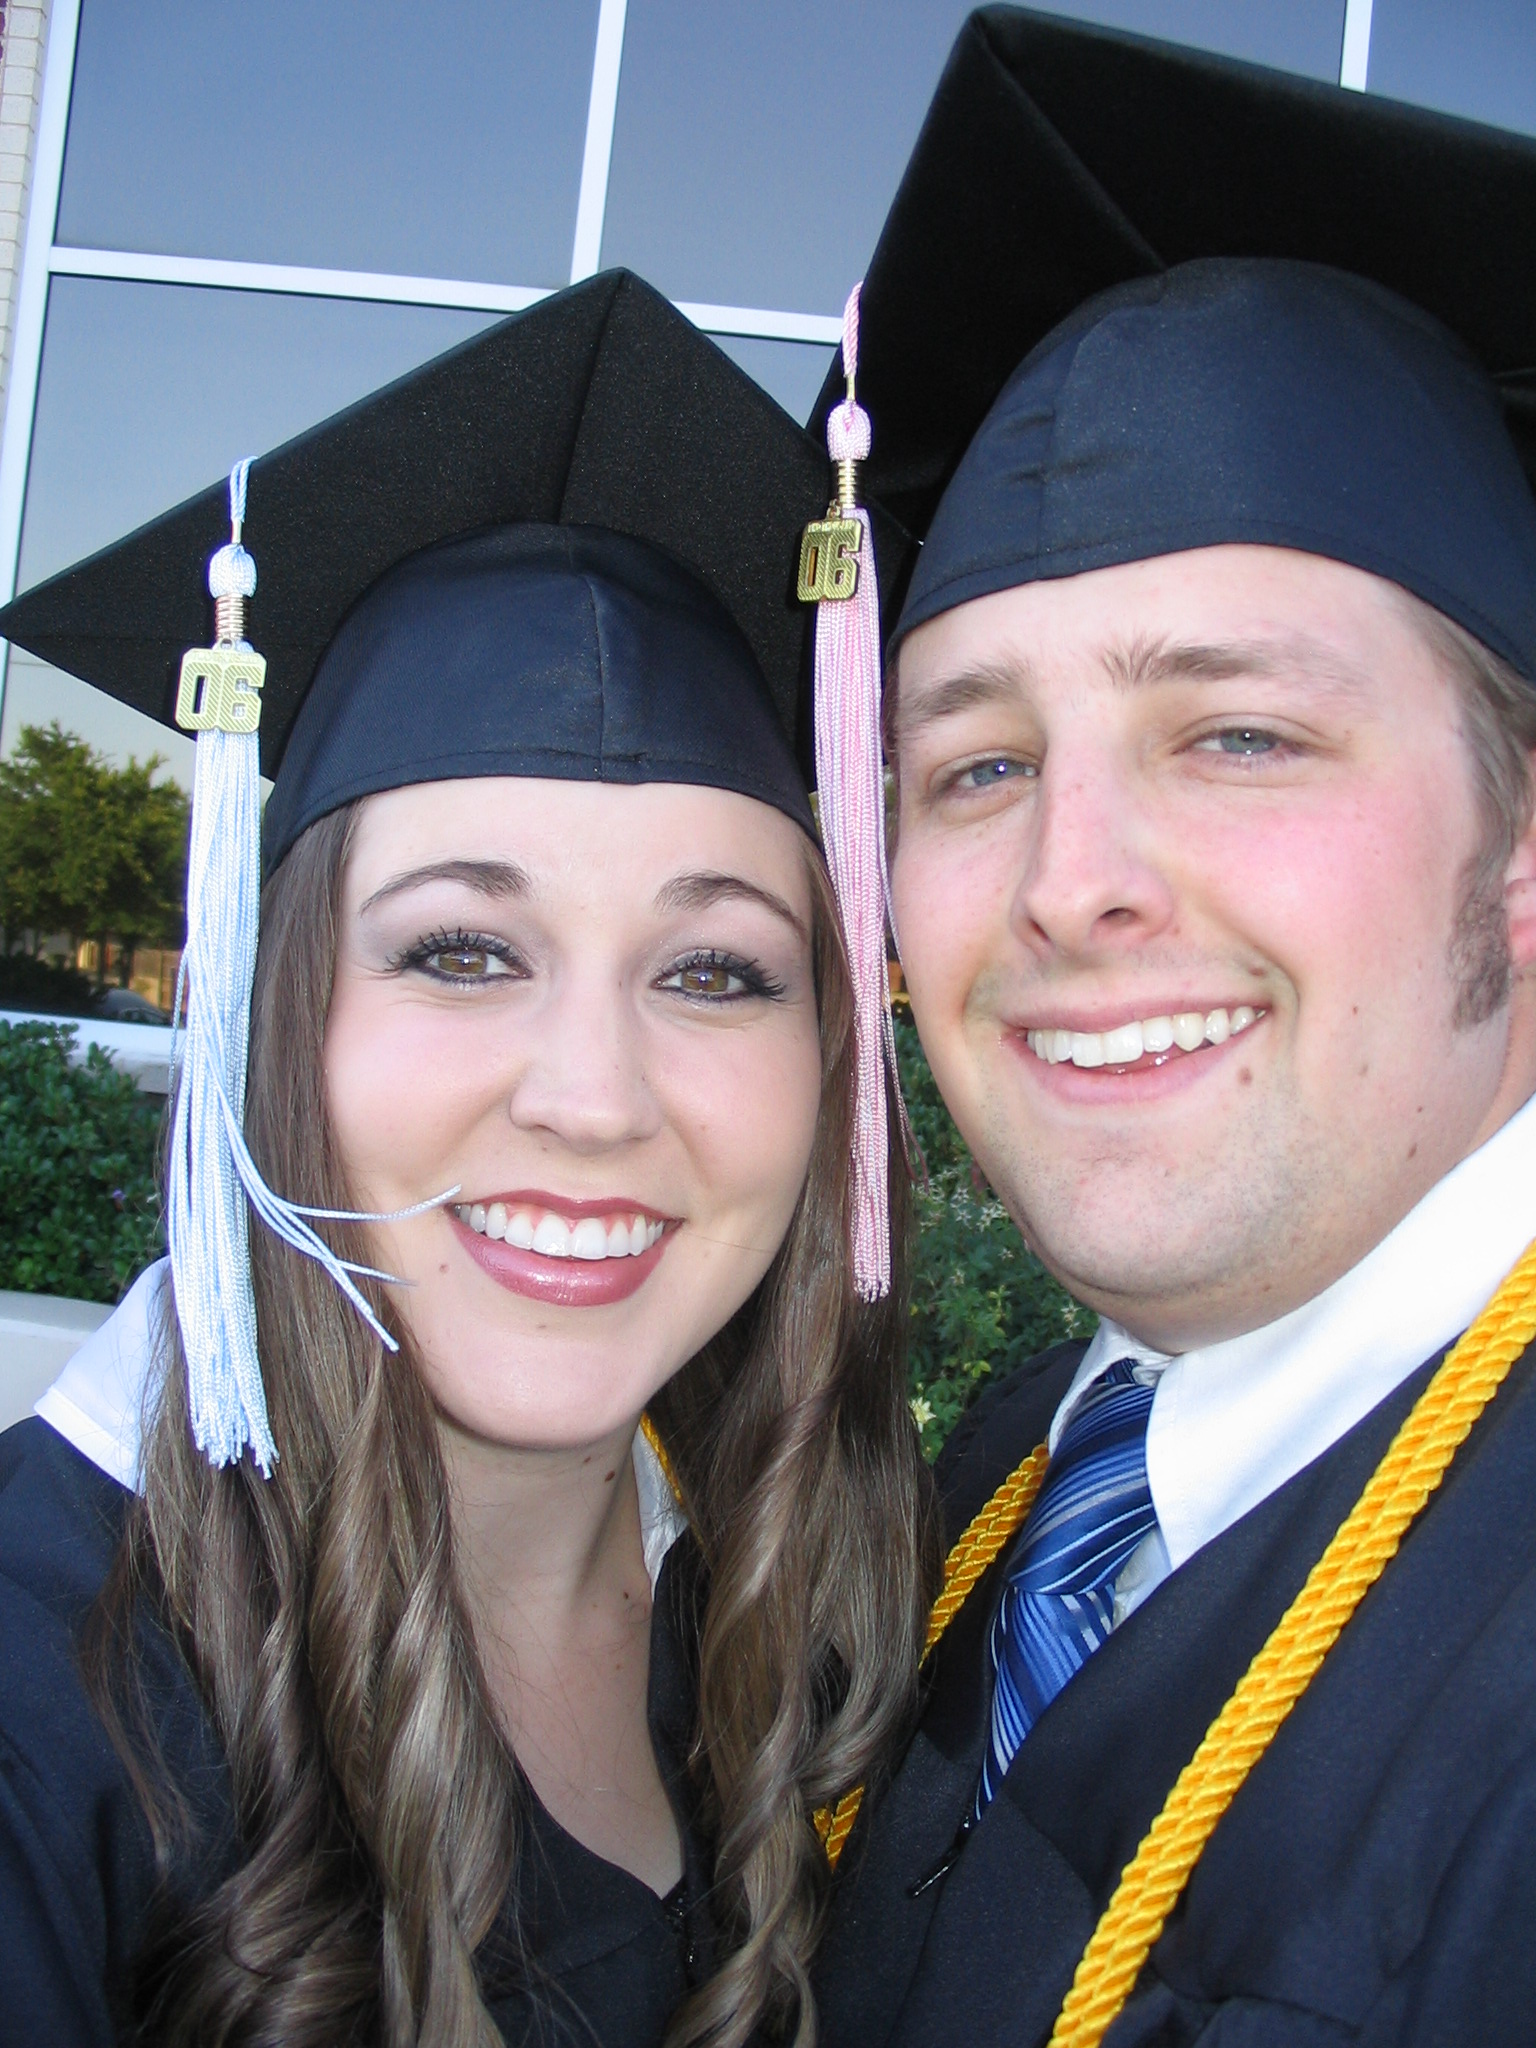 5.12.06 College graduation - 8 days before our wedding!